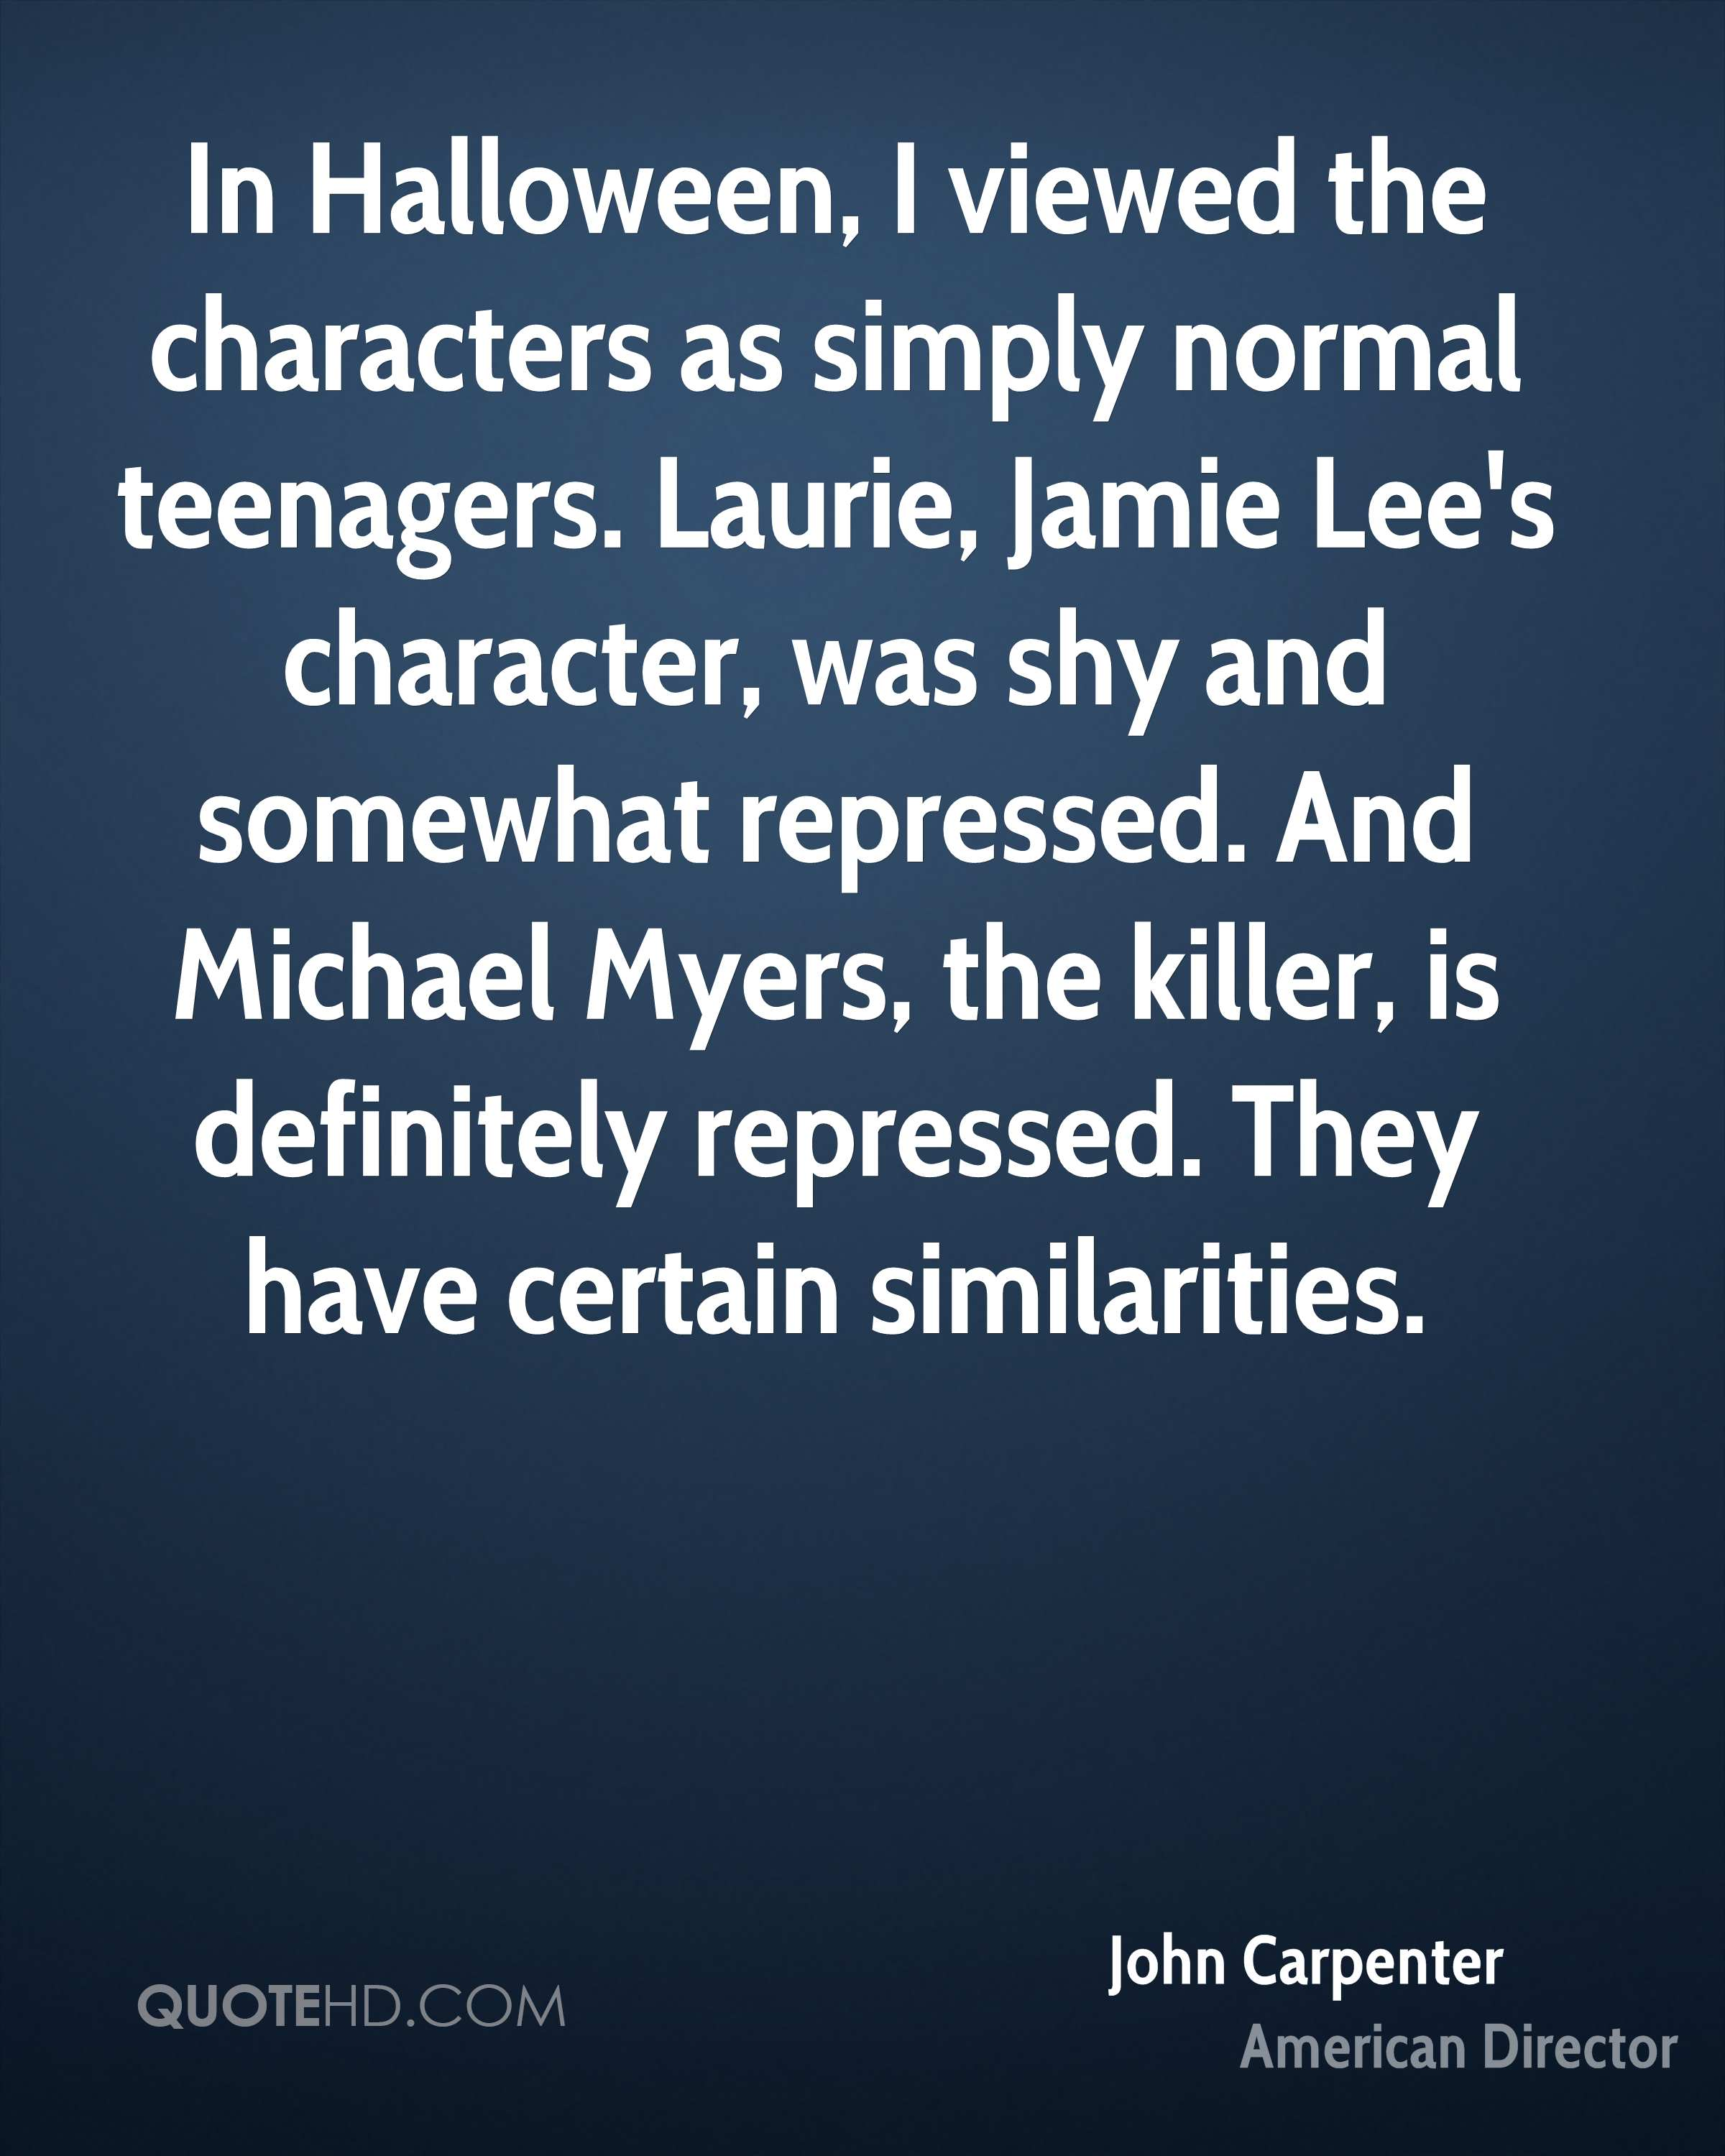 In Halloween, I viewed the characters as simply normal teenagers. Laurie, Jamie Lee's character, was shy and somewhat repressed. And Michael Myers, the killer, is definitely repressed. They have certain similarities.